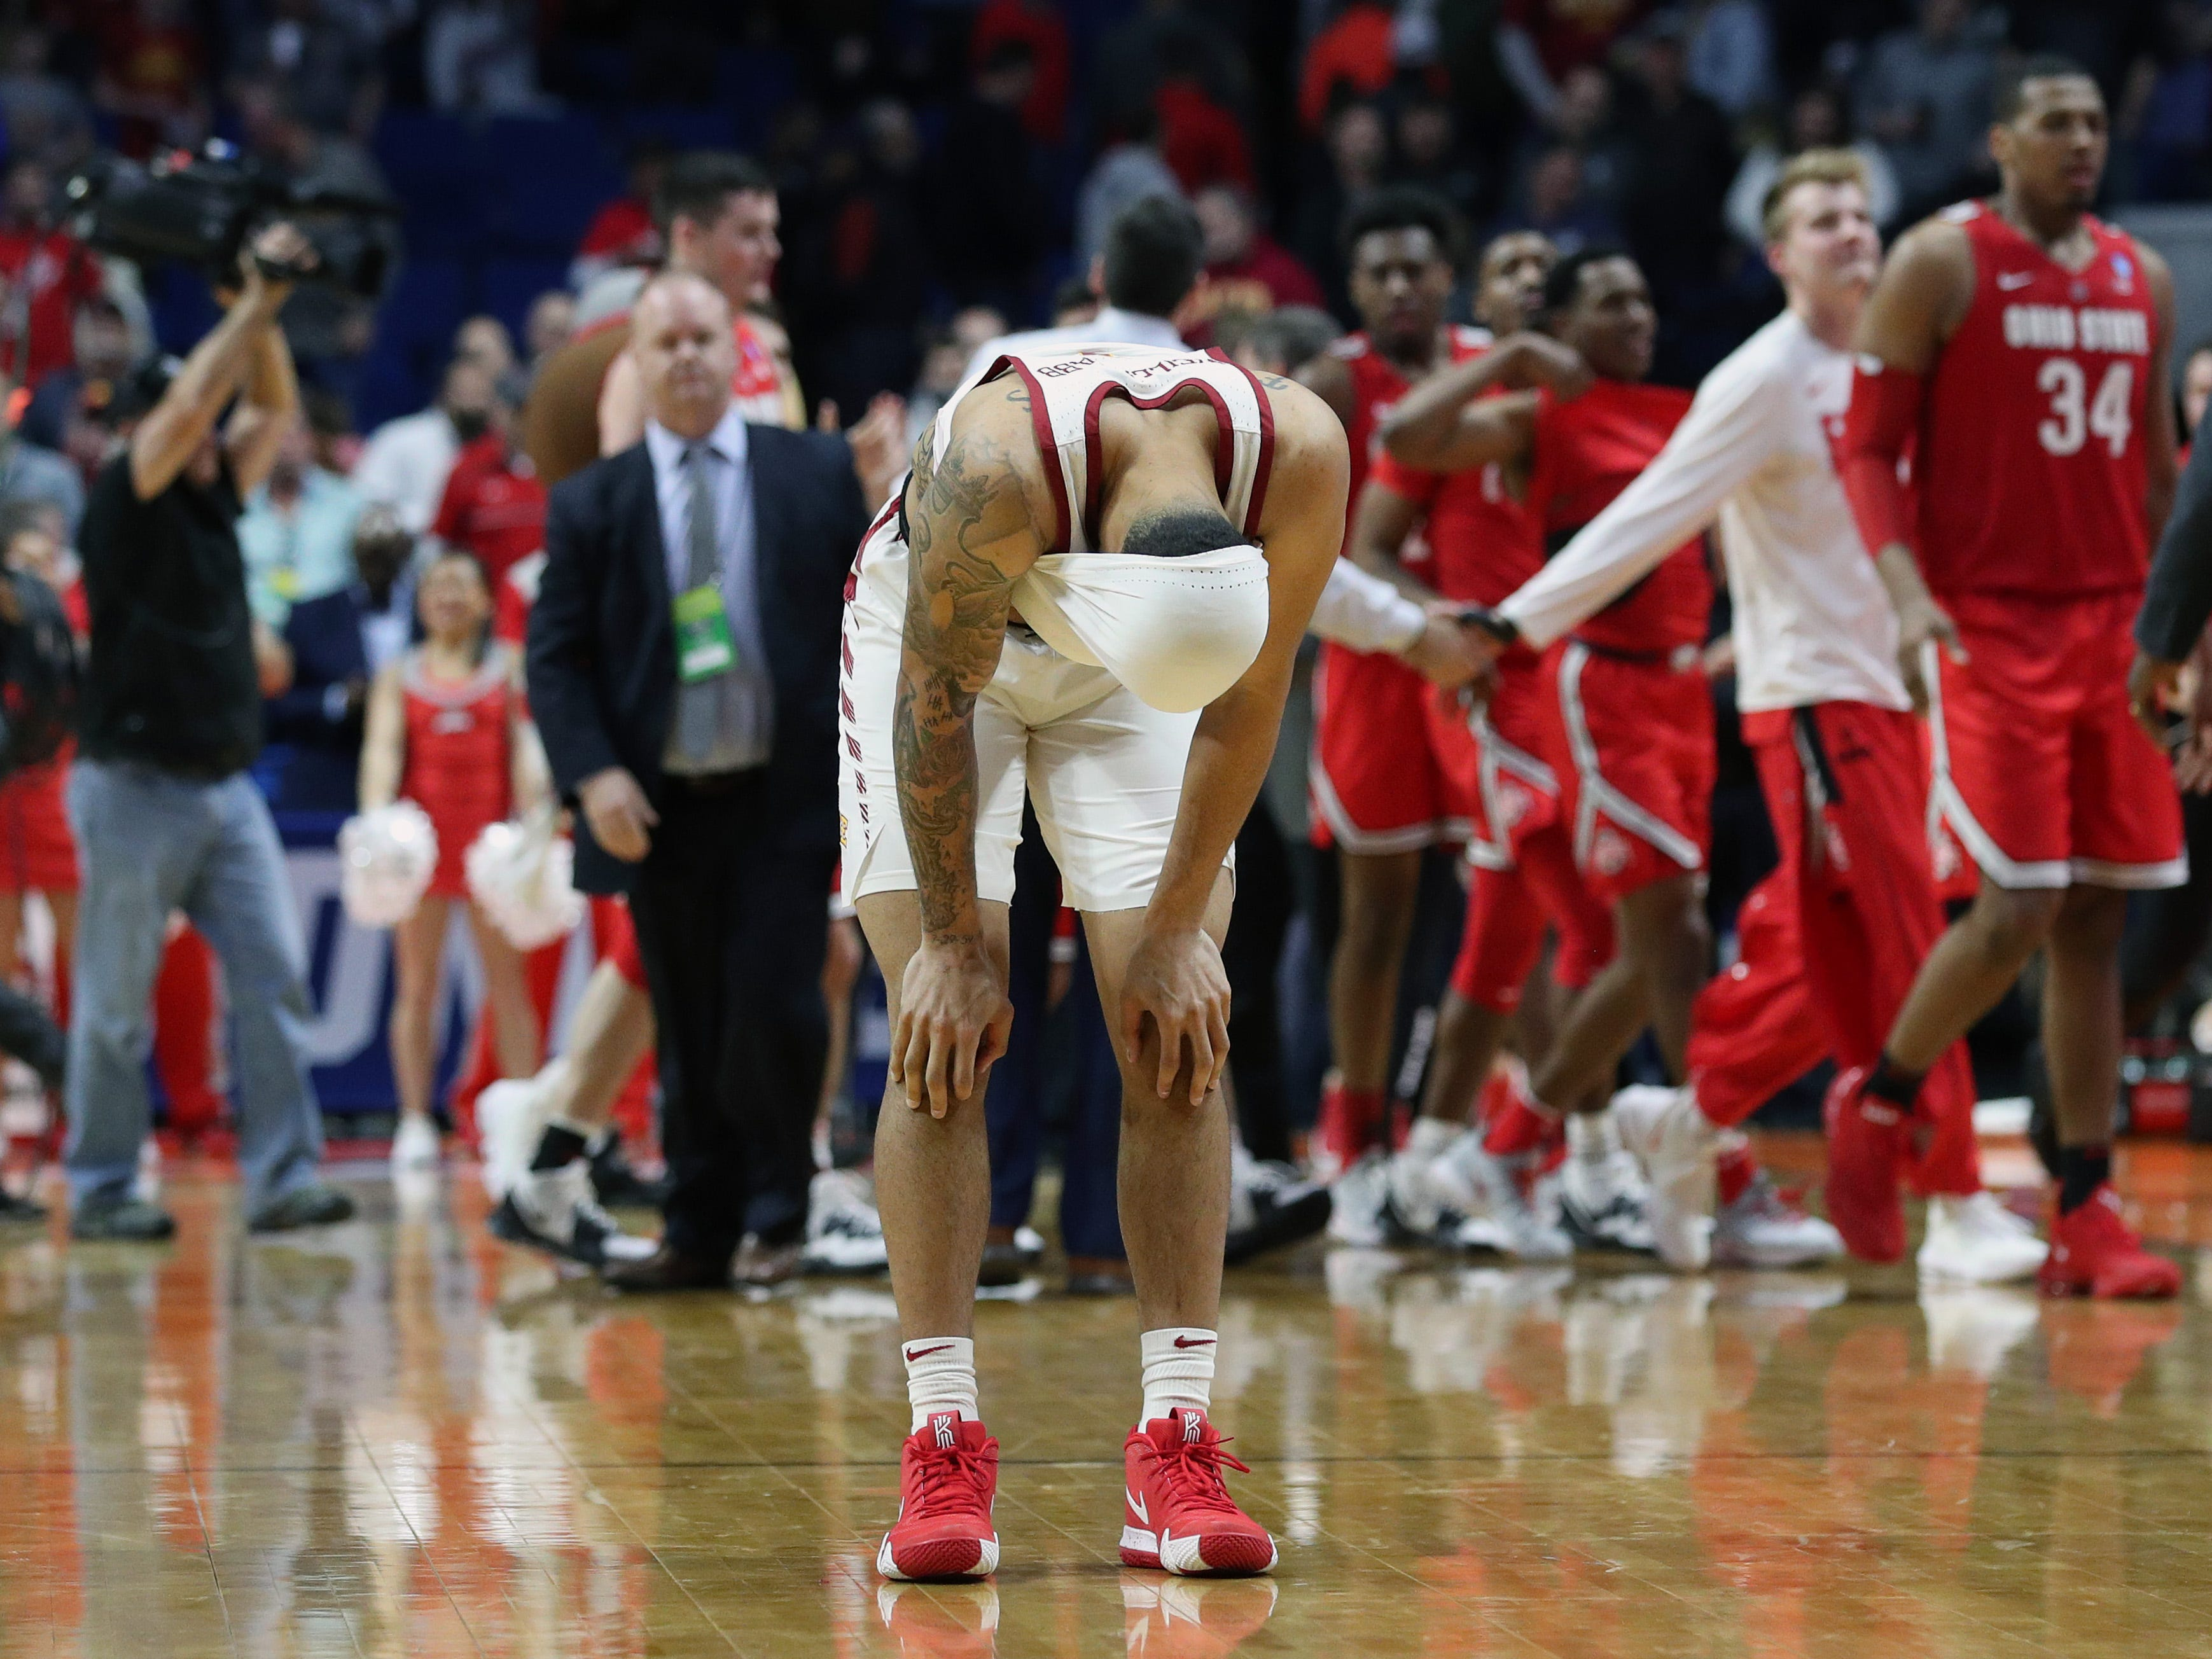 First round: No. 6 Iowa State loses to No. 11 Ohio State, 62-59.